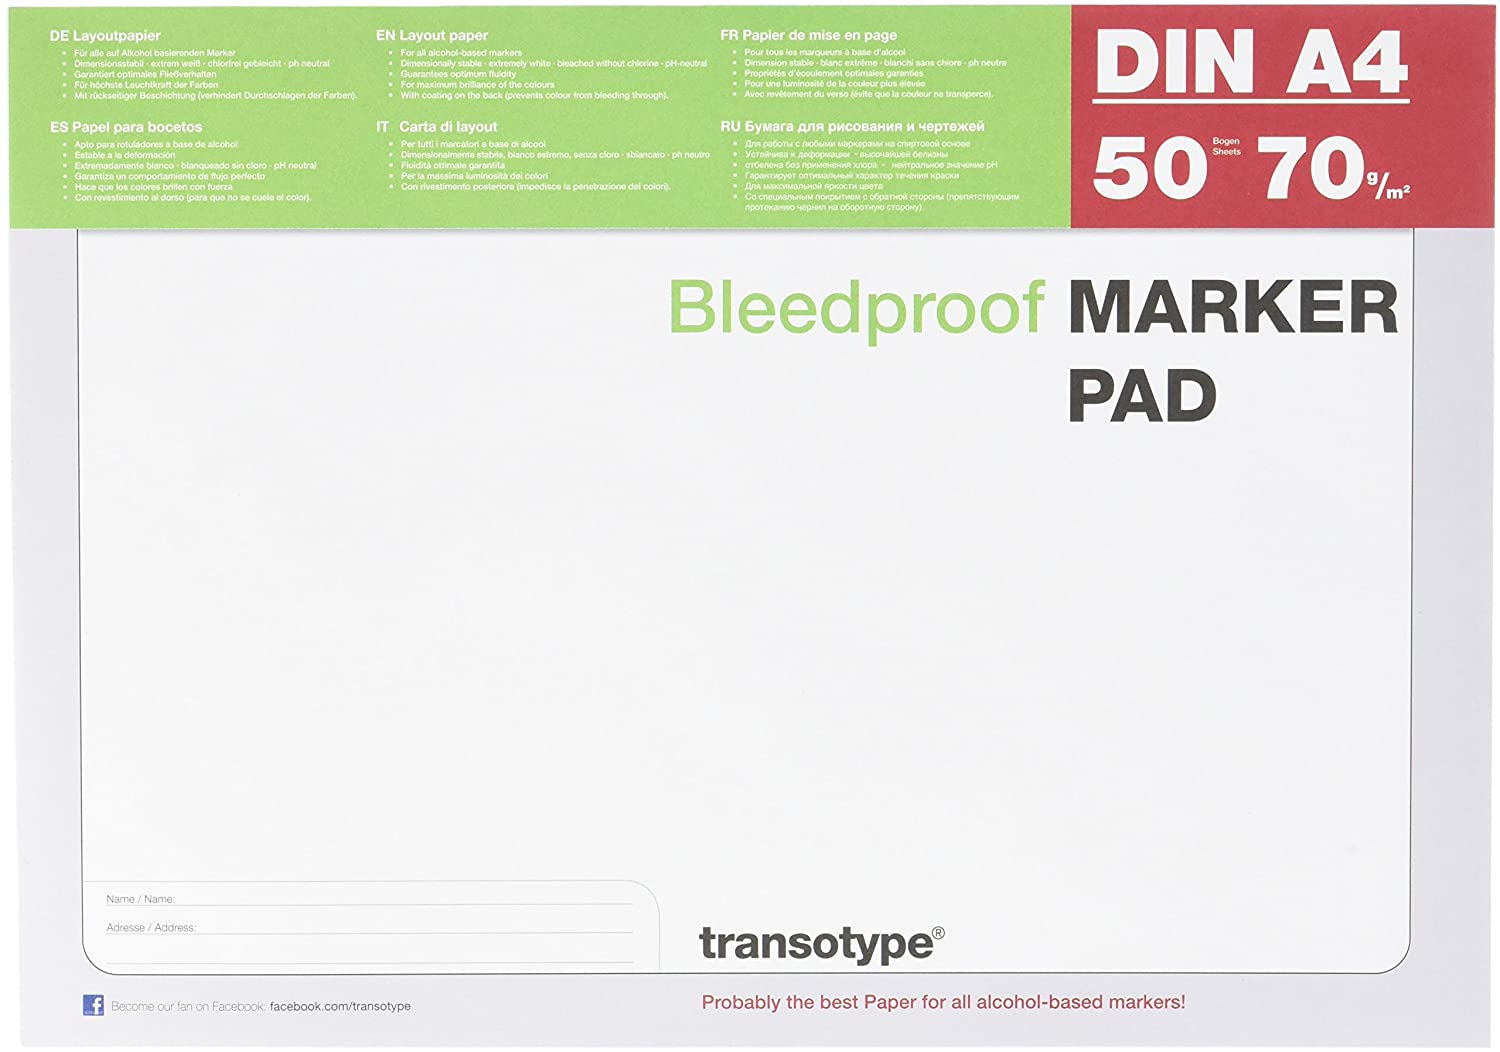 Transotype Bleed Proof Alcohol Marker Pad, A4, 50 Sheets: Amazon.ca ...